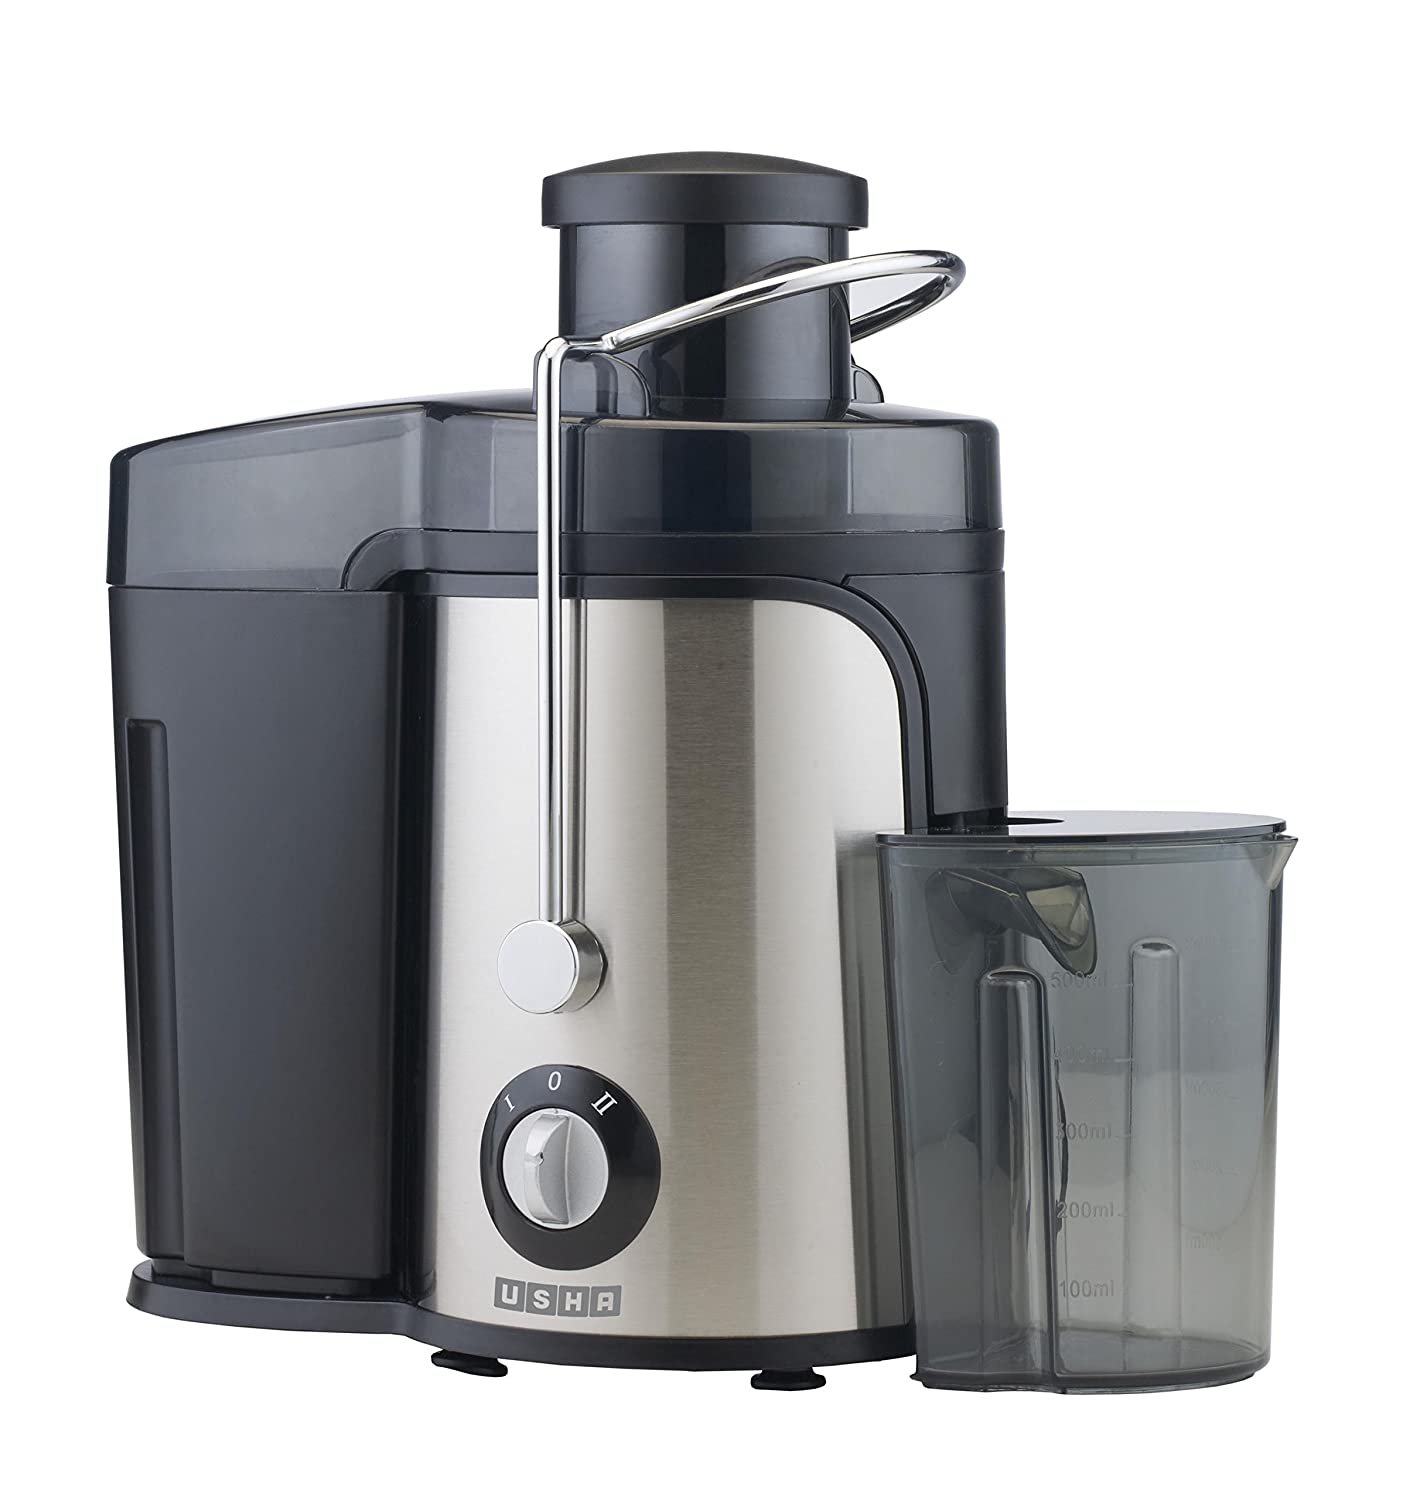 Viva Collection Slow Juicer Review : Best Juicers in India 2018 - Reviews And Comparisons